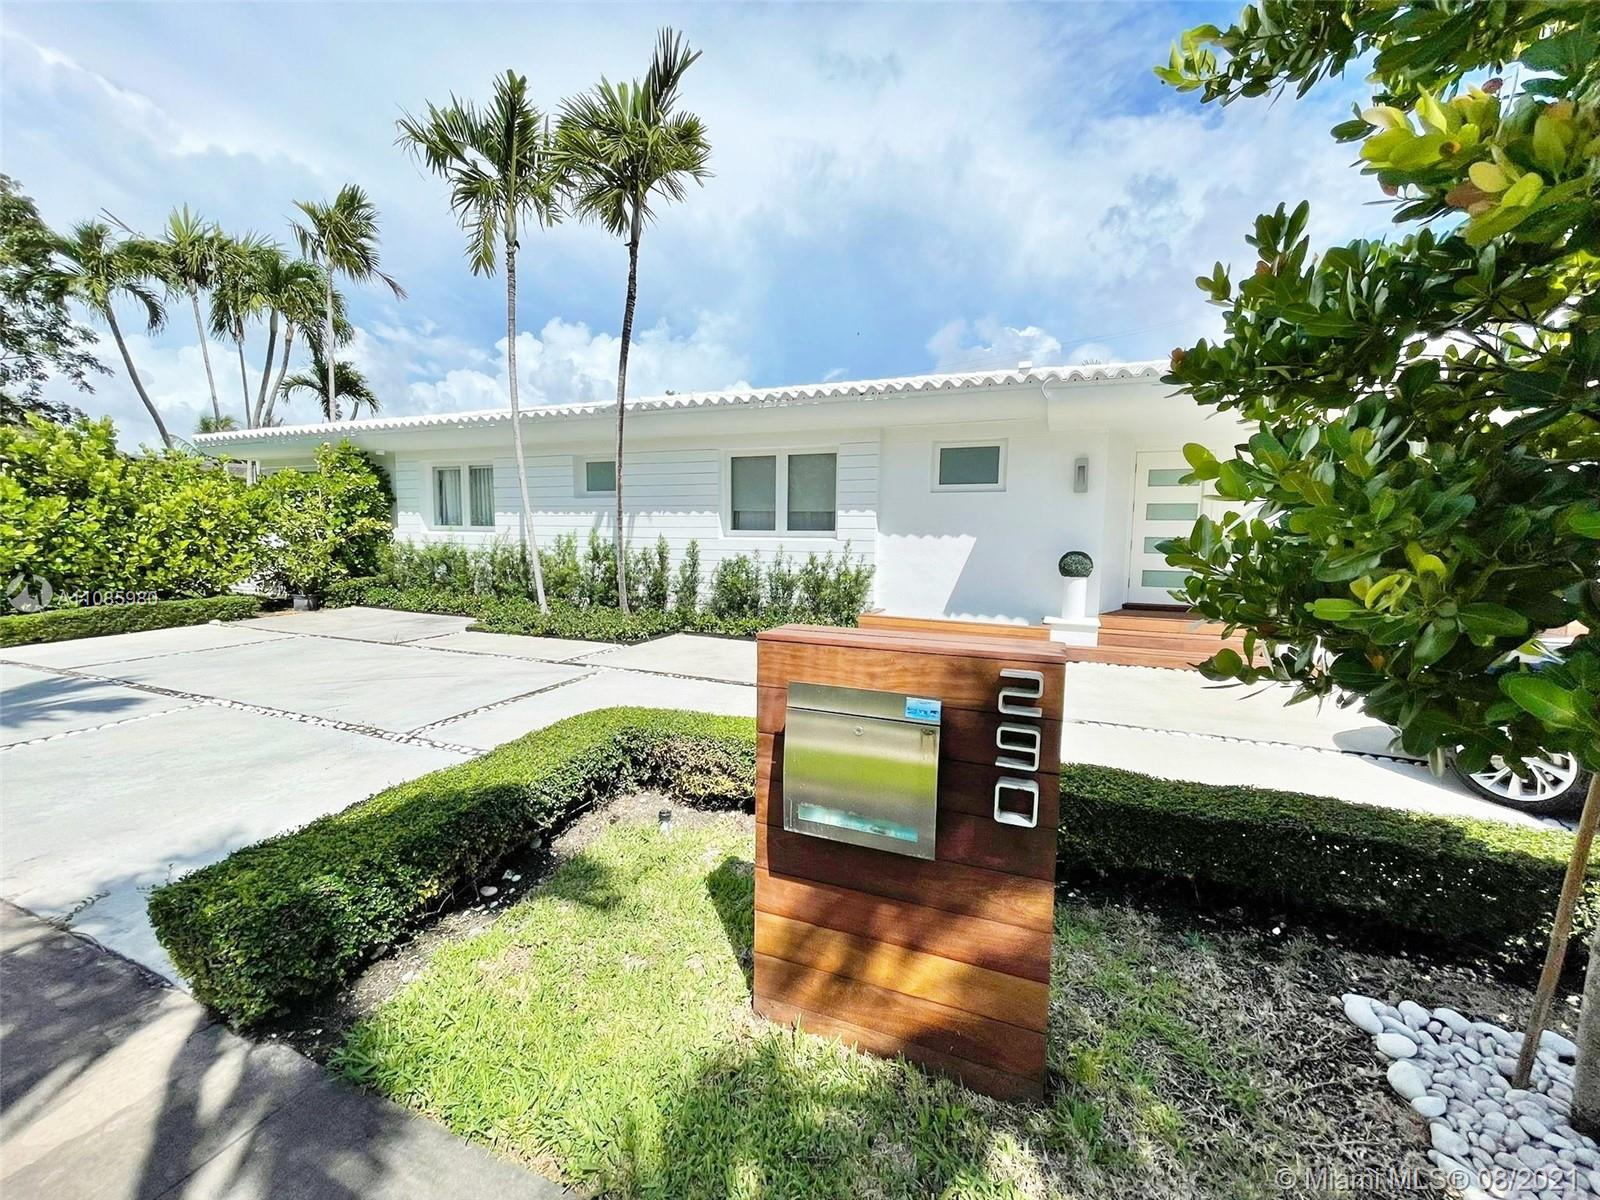 Great Location!! Close the best schools in Miami. 5 minutes to Brickell, 10 minutes to Key Biscayne and 15 minutes to the Miami International Airport. Gorgeous fully renovated home in Bay Heights. Top of the line appliances and finishes with plenty of natural light and a beautiful backyard with large swimming pool. This incredible house has 4 bed 3 full bath inside the house and another full bath in the garage area with a medium bedroom.